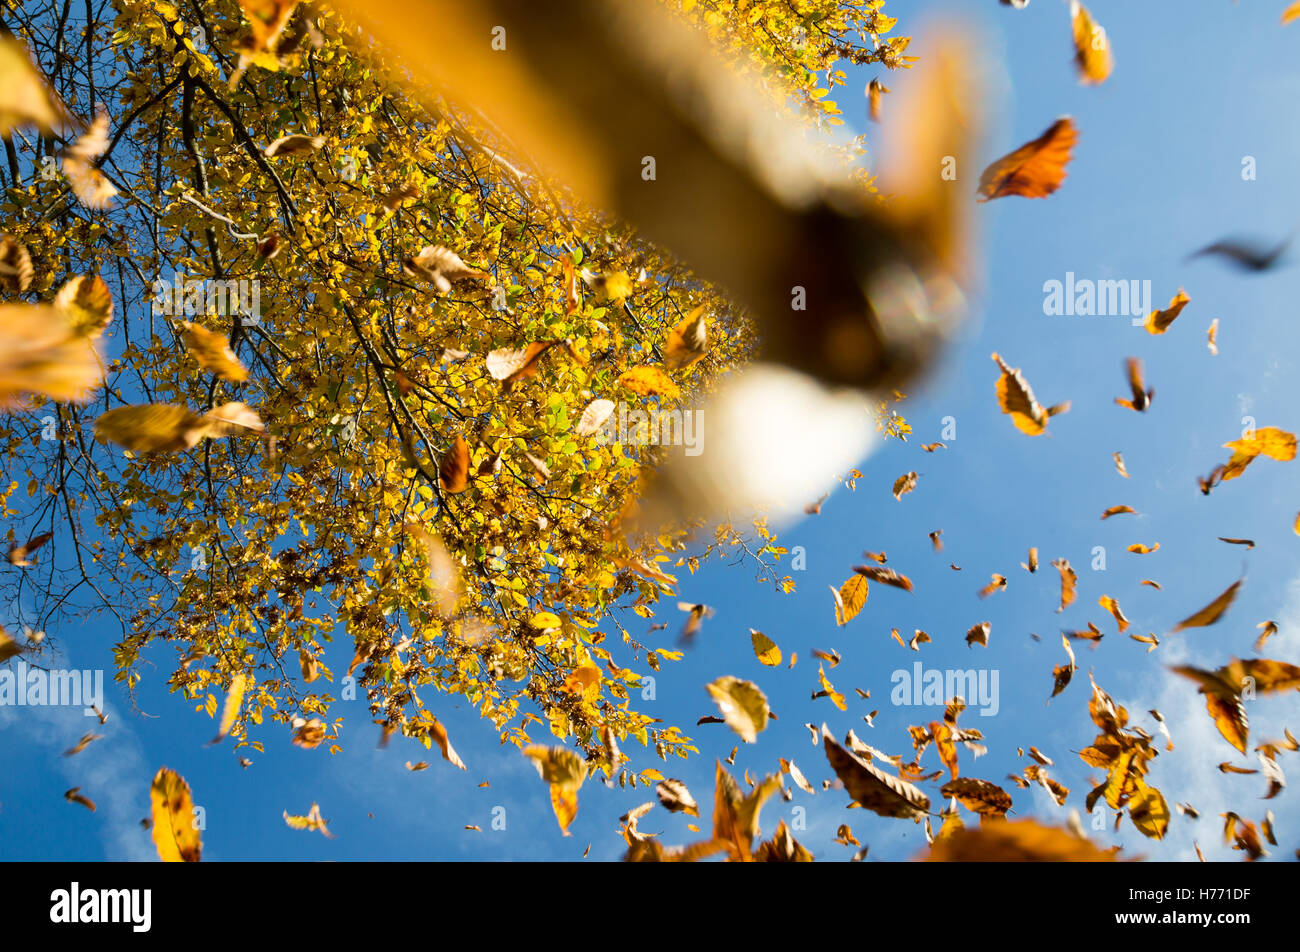 Falling autumn leaves against a blue sky - Stock Image